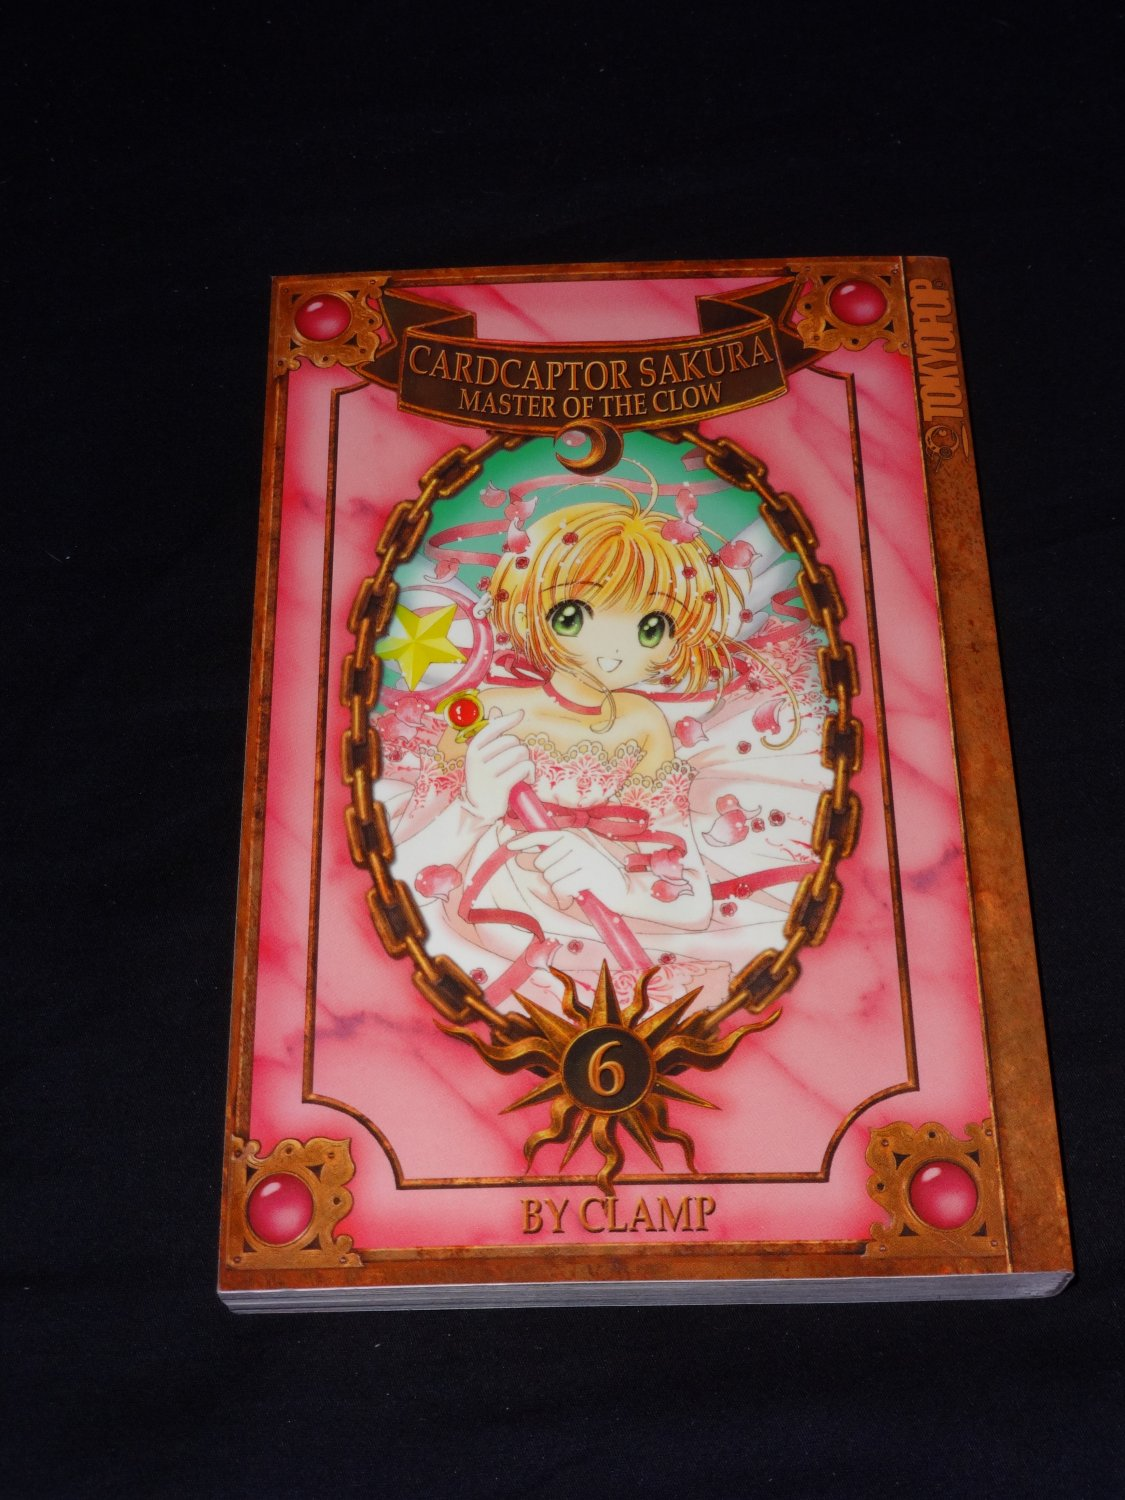 Cardcaptor Sakura: Master of the Clow, Book 2 Clamp Paperback